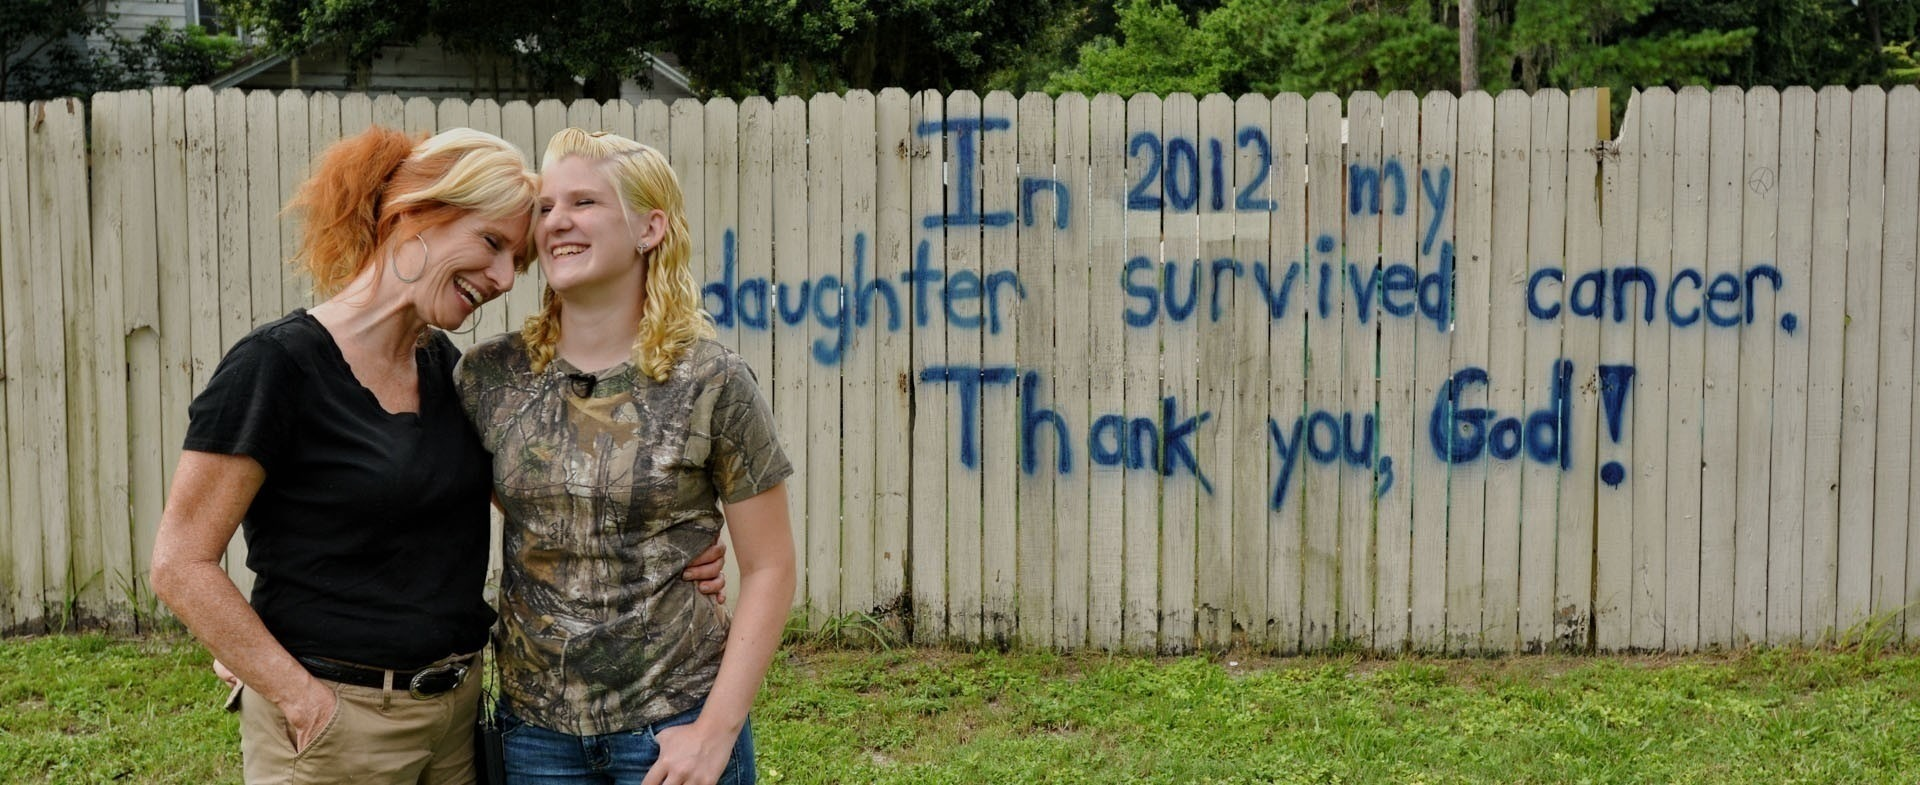 A cancer survivor with her mother